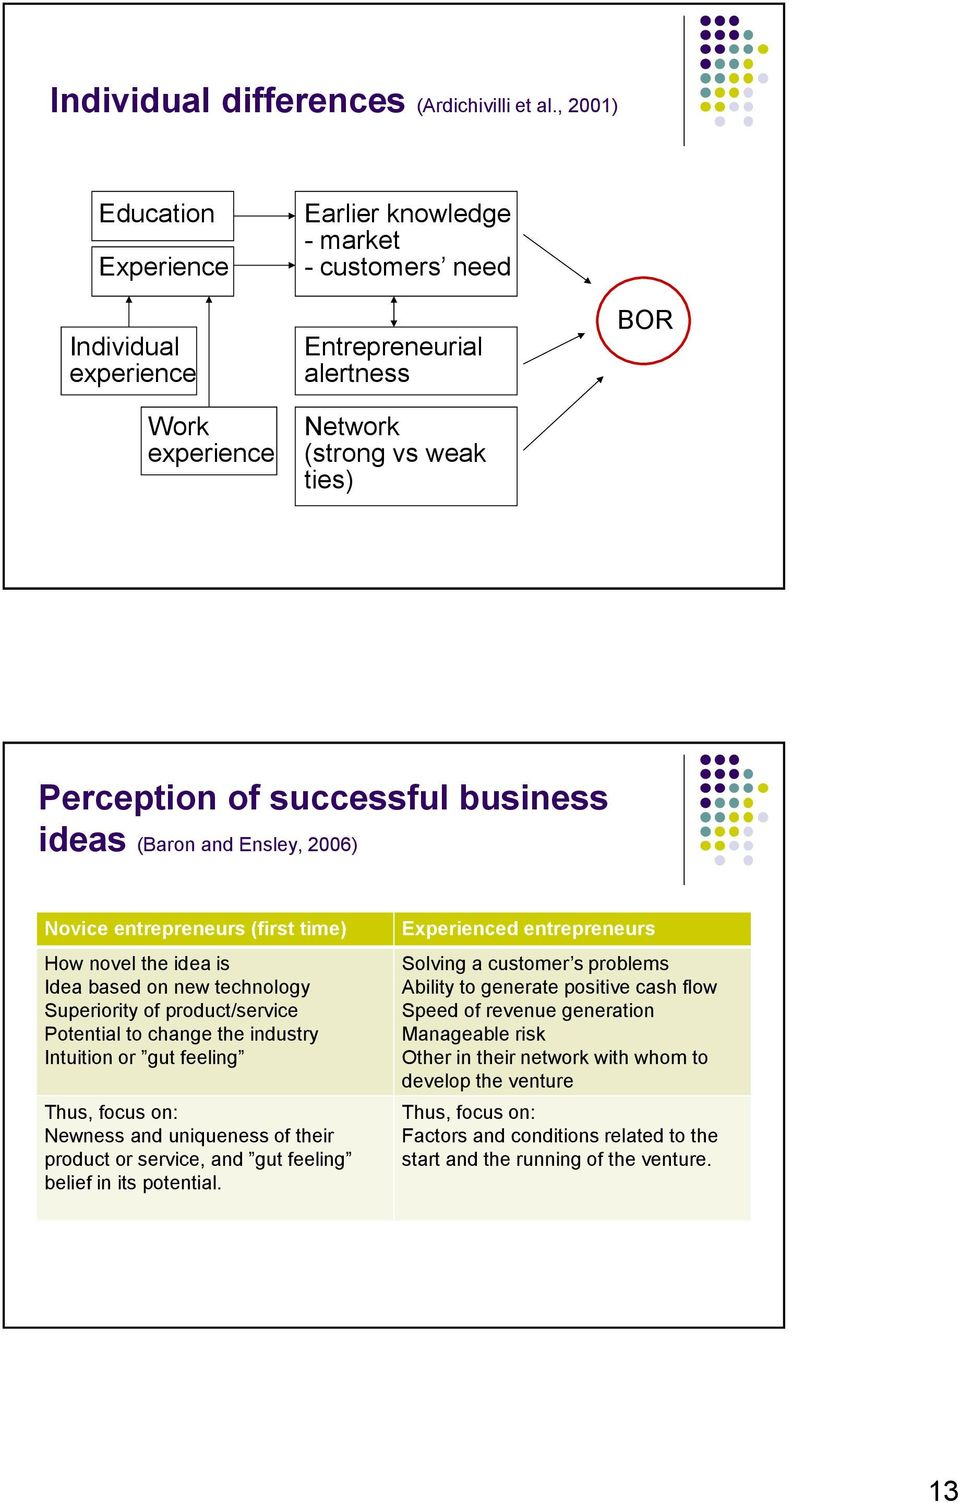 business ideas (Baron and Ensley, 2006) Novice entrepreneurs (first time) How novel the idea is Idea based on new technology Superiority of product/service Potential to change the industry Intuition